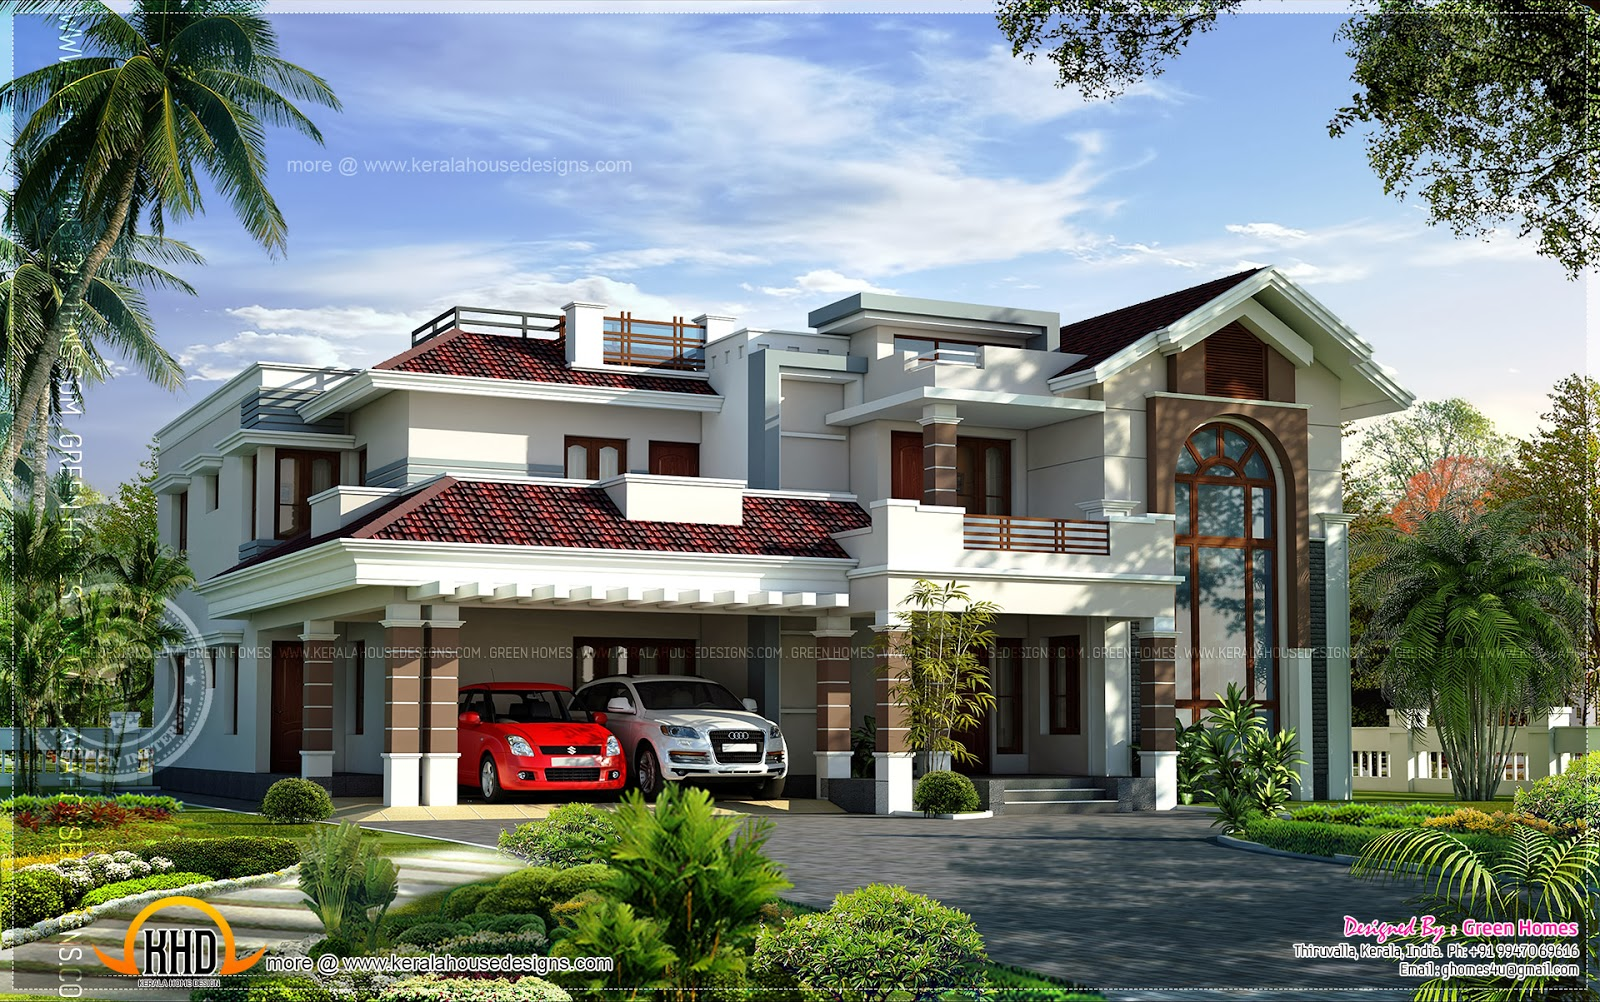 square yards luxury villa design  Kerala home design and floor plans